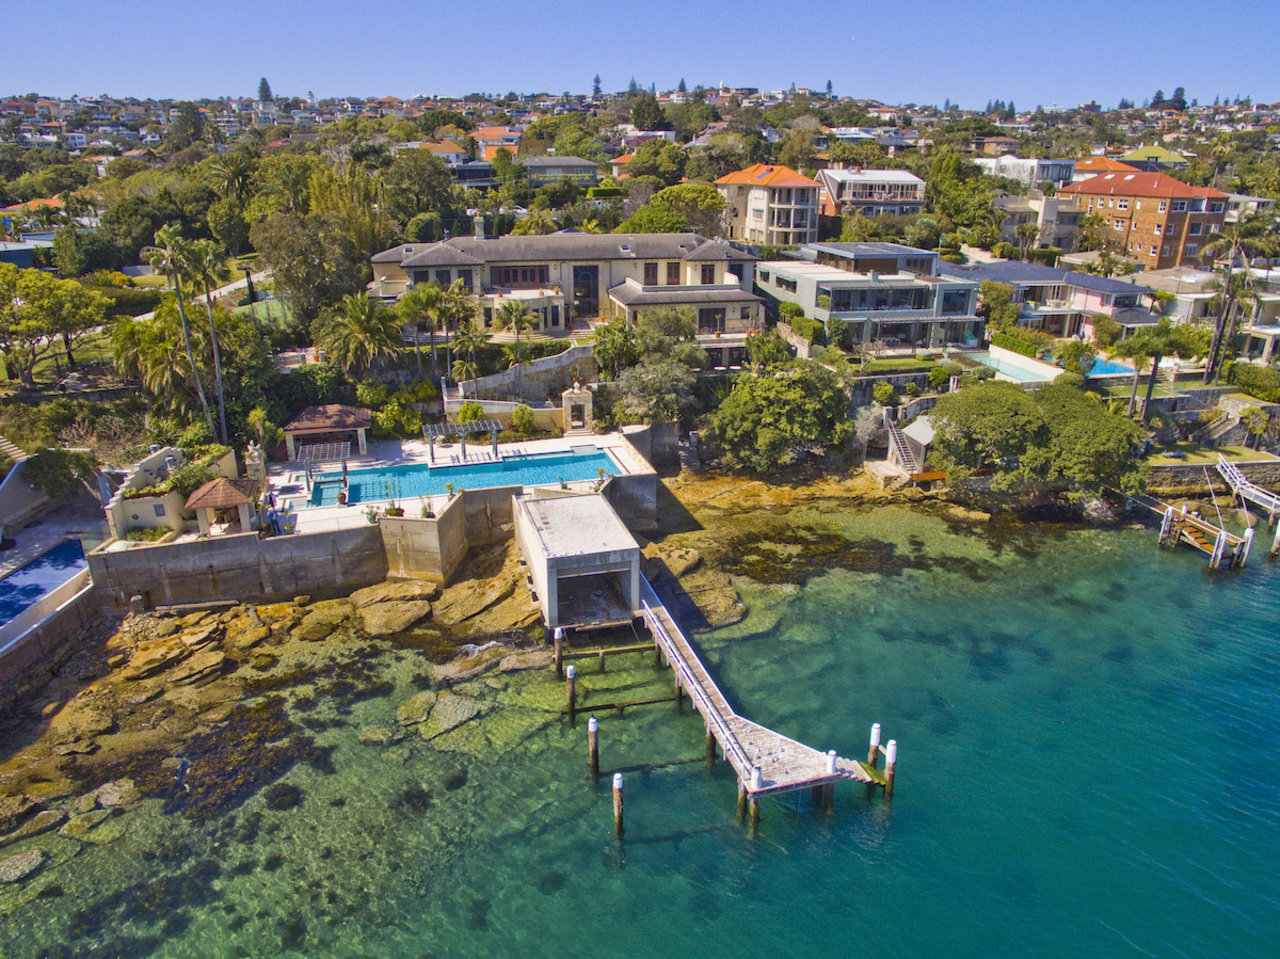 This waterfront mansion in Sydney, Australia, sold in December. It was asking A$70 million